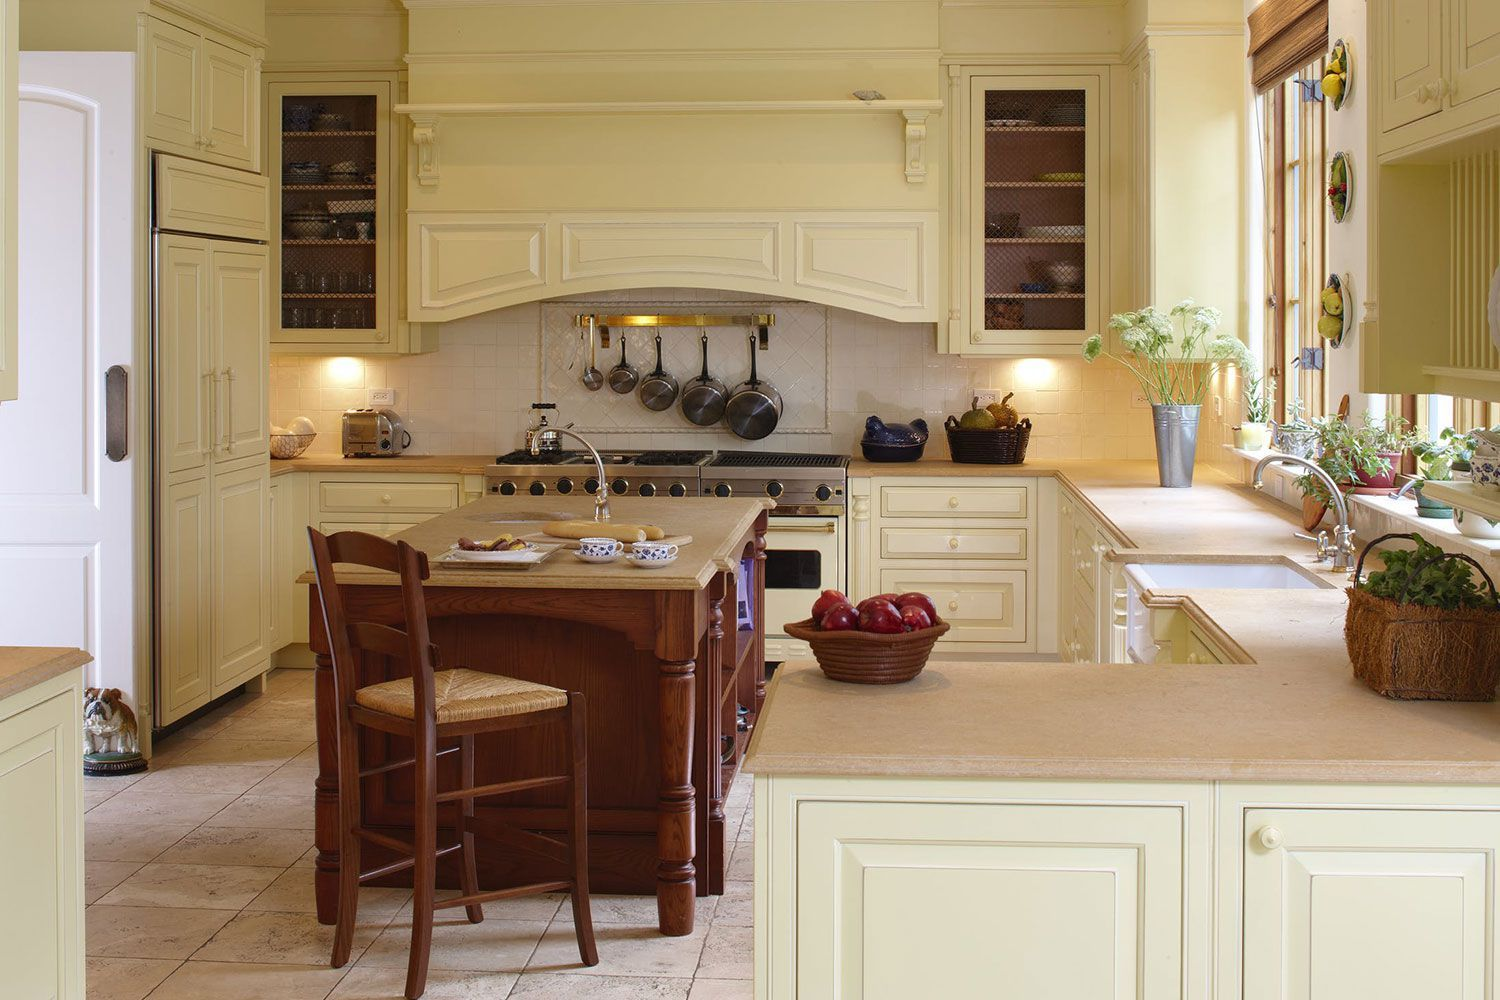 21 yellow kitchen ideas to brighten up your home classic white kitchen kitchen cabinet colors on kitchen interior yellow and white id=80512